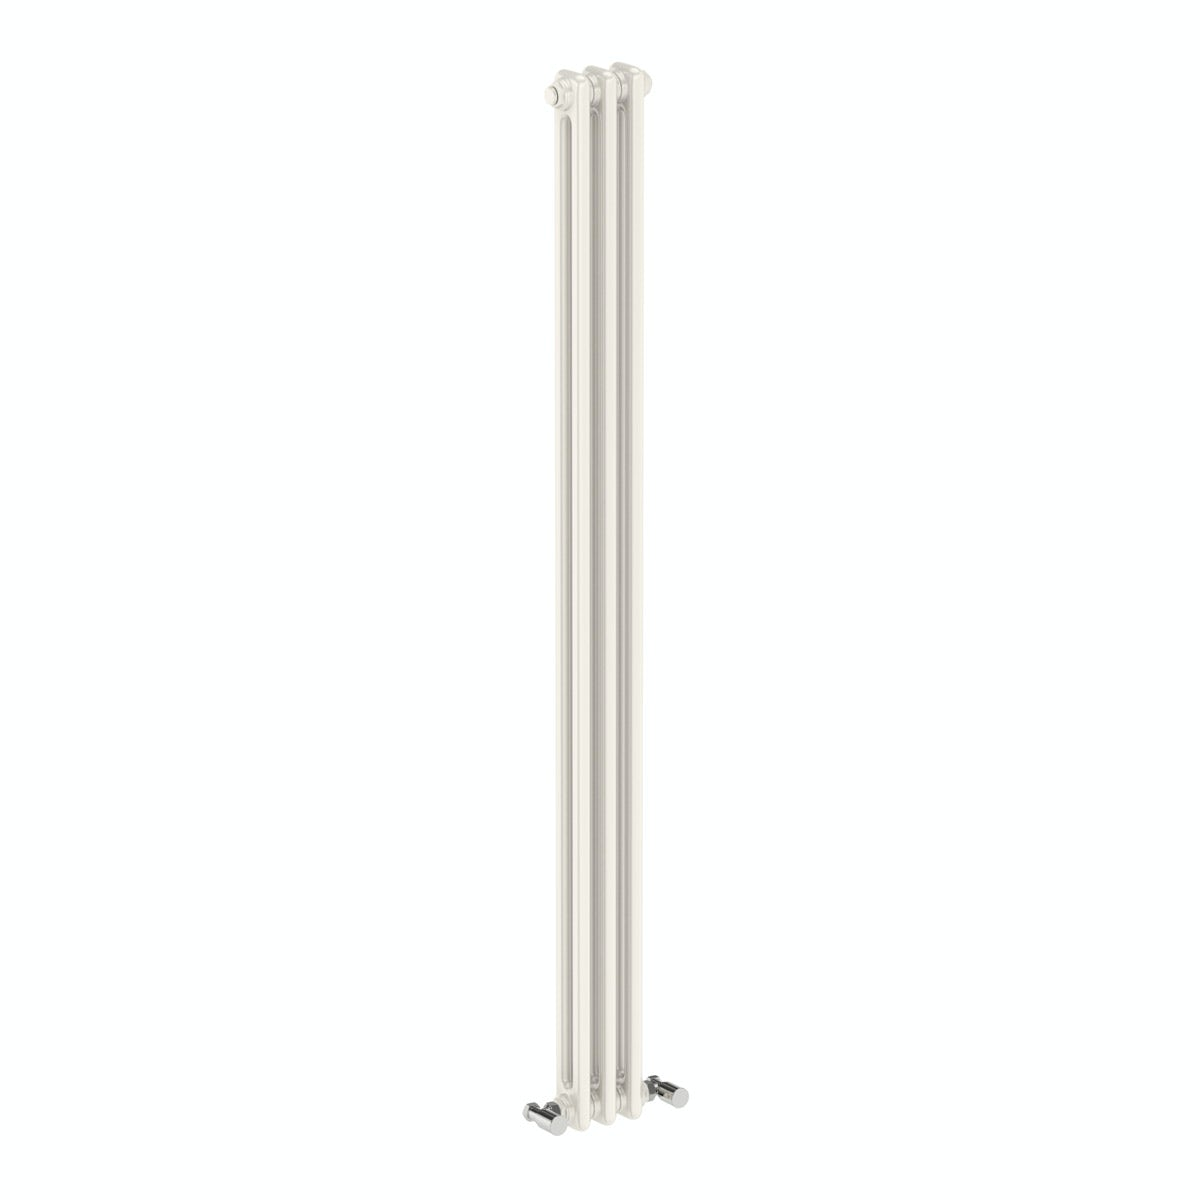 Dulwich vertical white double column radiator 1500 x 155